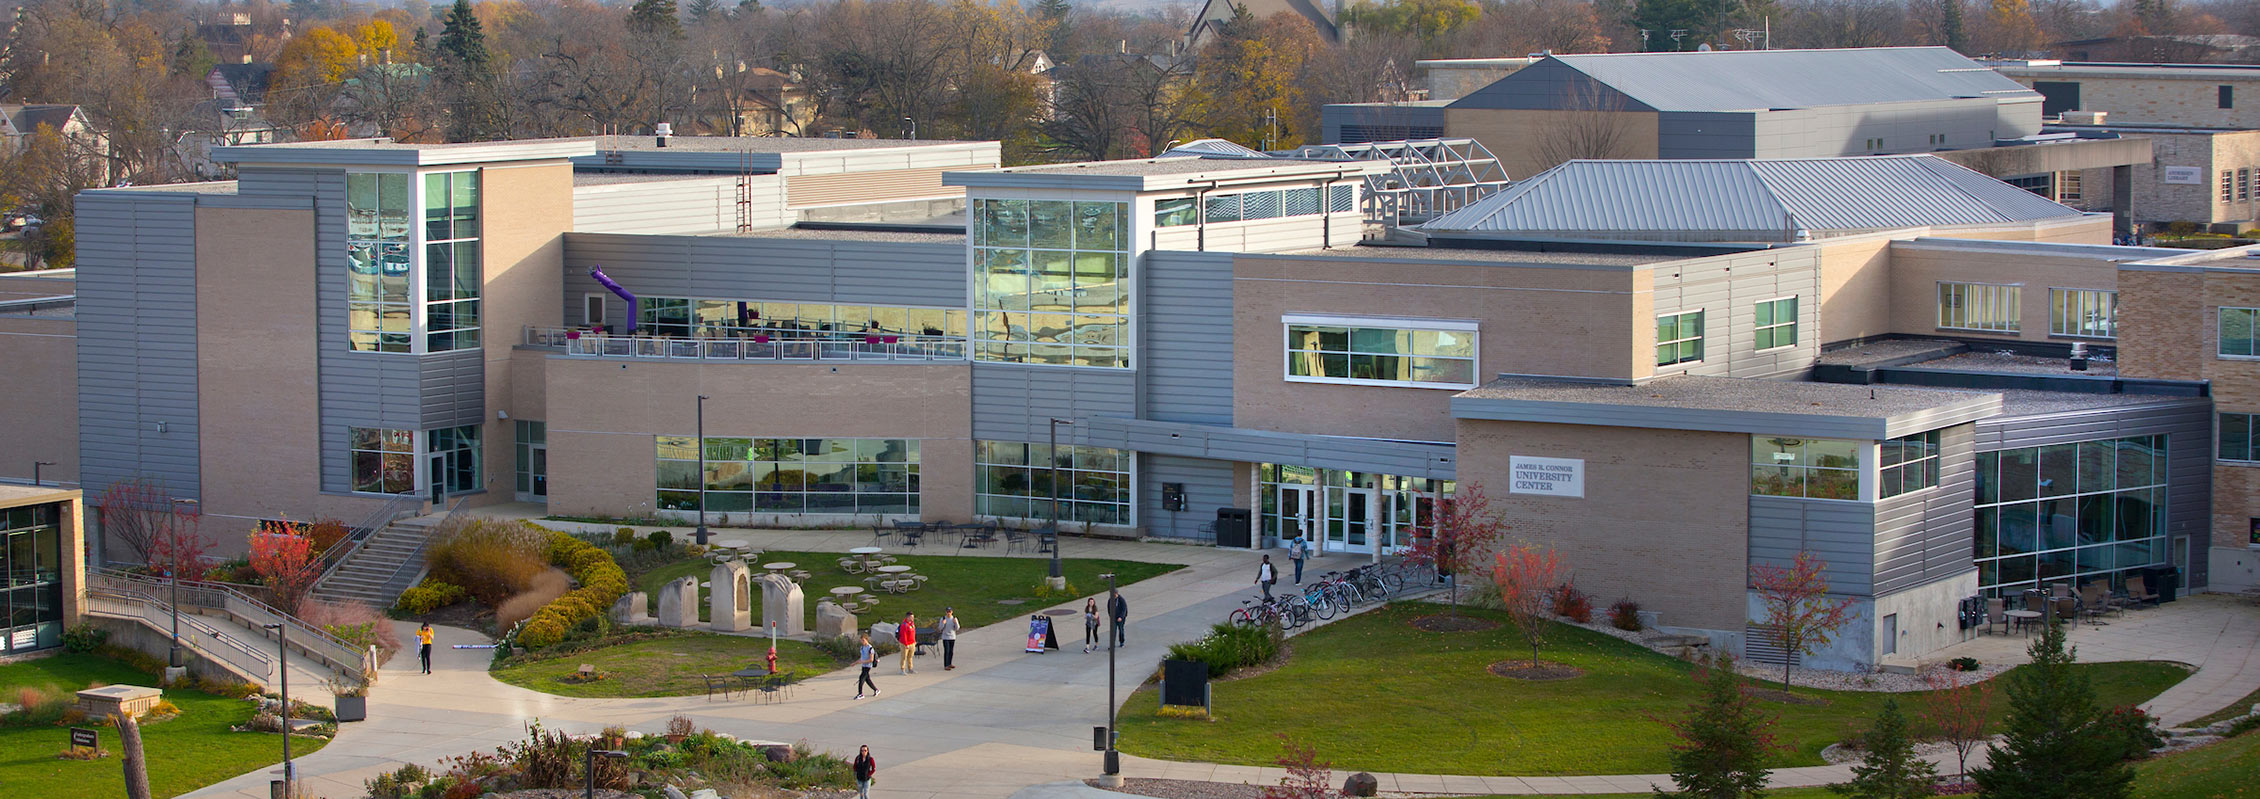 Overhead view of UW-Whitewater's University Center